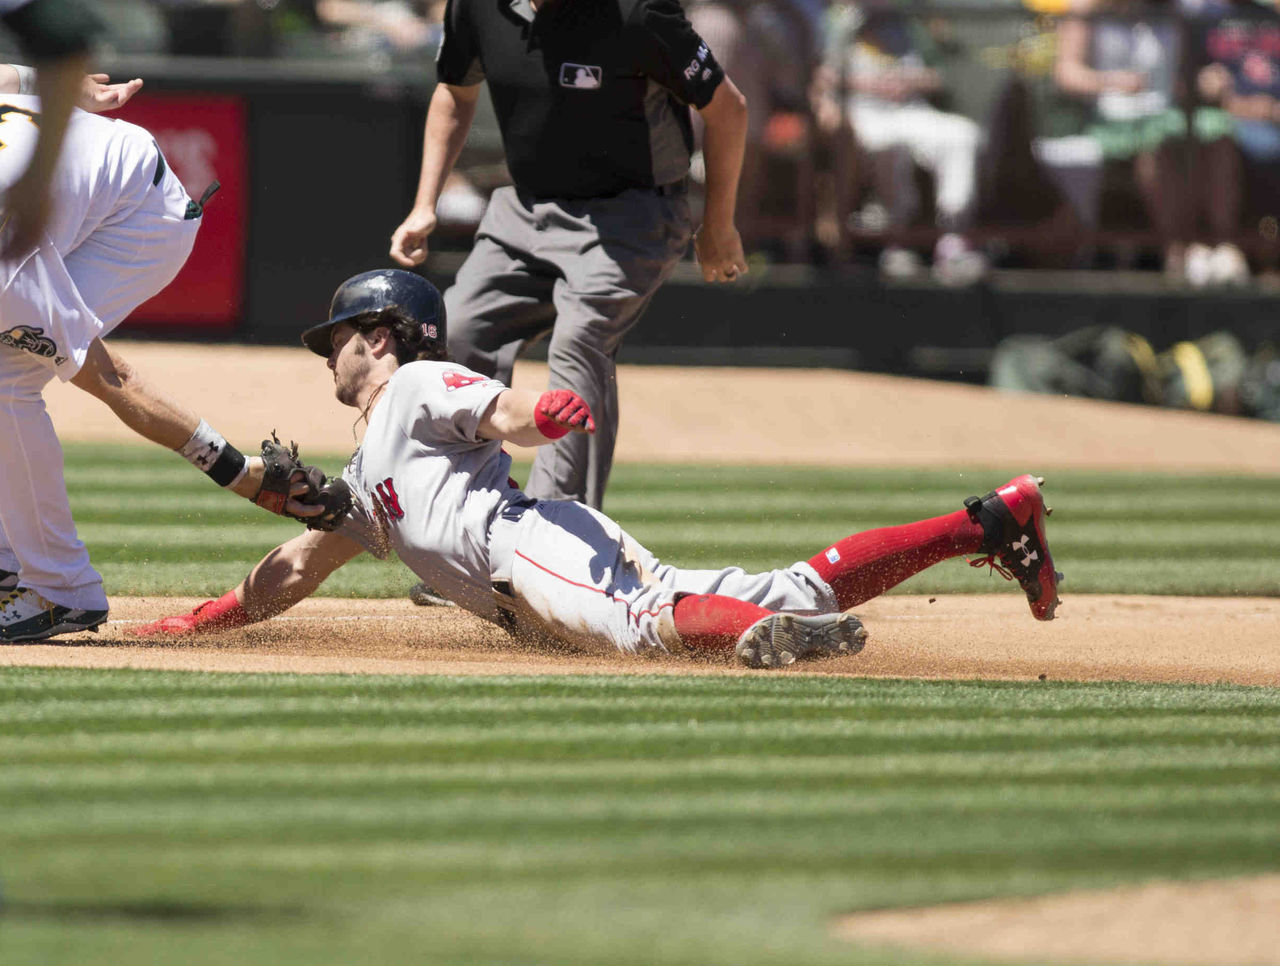 Cropped 2017 05 21t213434z 1578319972 nocid rtrmadp 3 mlb boston red sox at oakland athletics